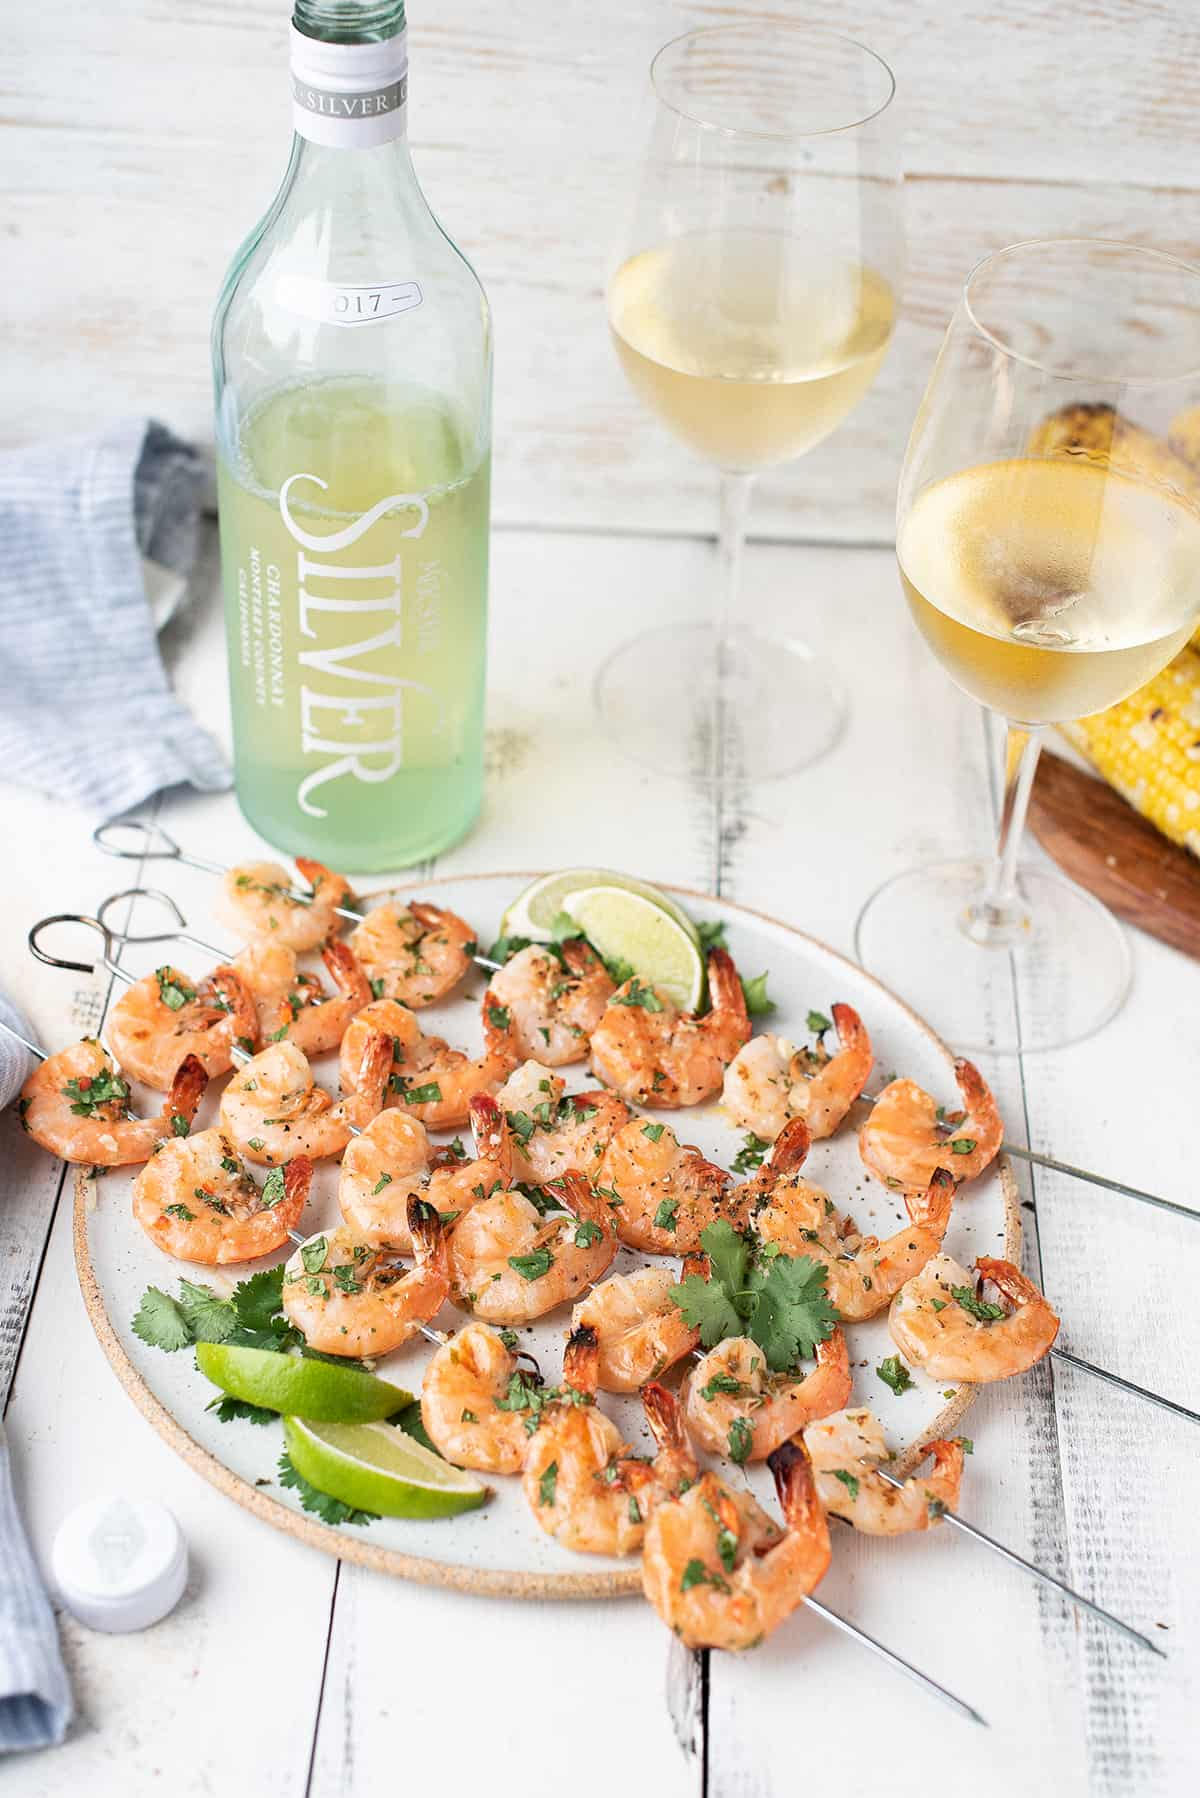 shrimp skewers on white plate with glasses & bottle of white wine